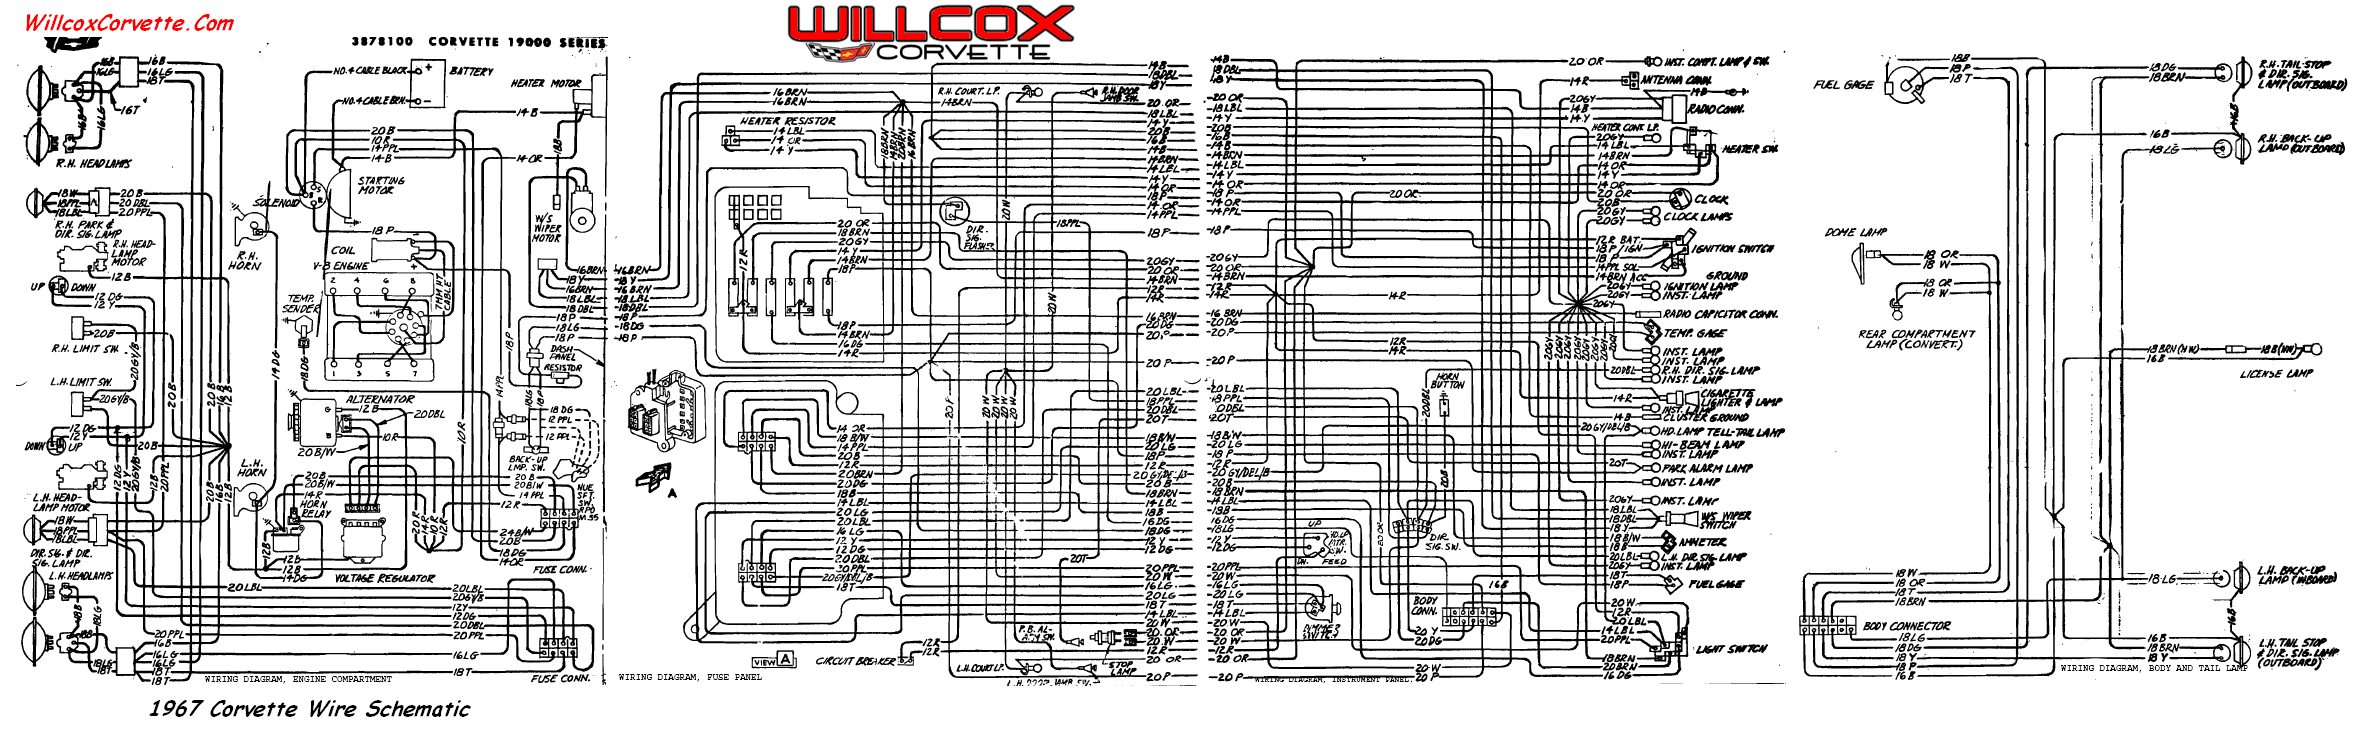 67 wire schematic for tracing wires 1967 corvette wiring diagram (tracer schematic) willcox corvette 2001 corvette wiring diagram at reclaimingppi.co